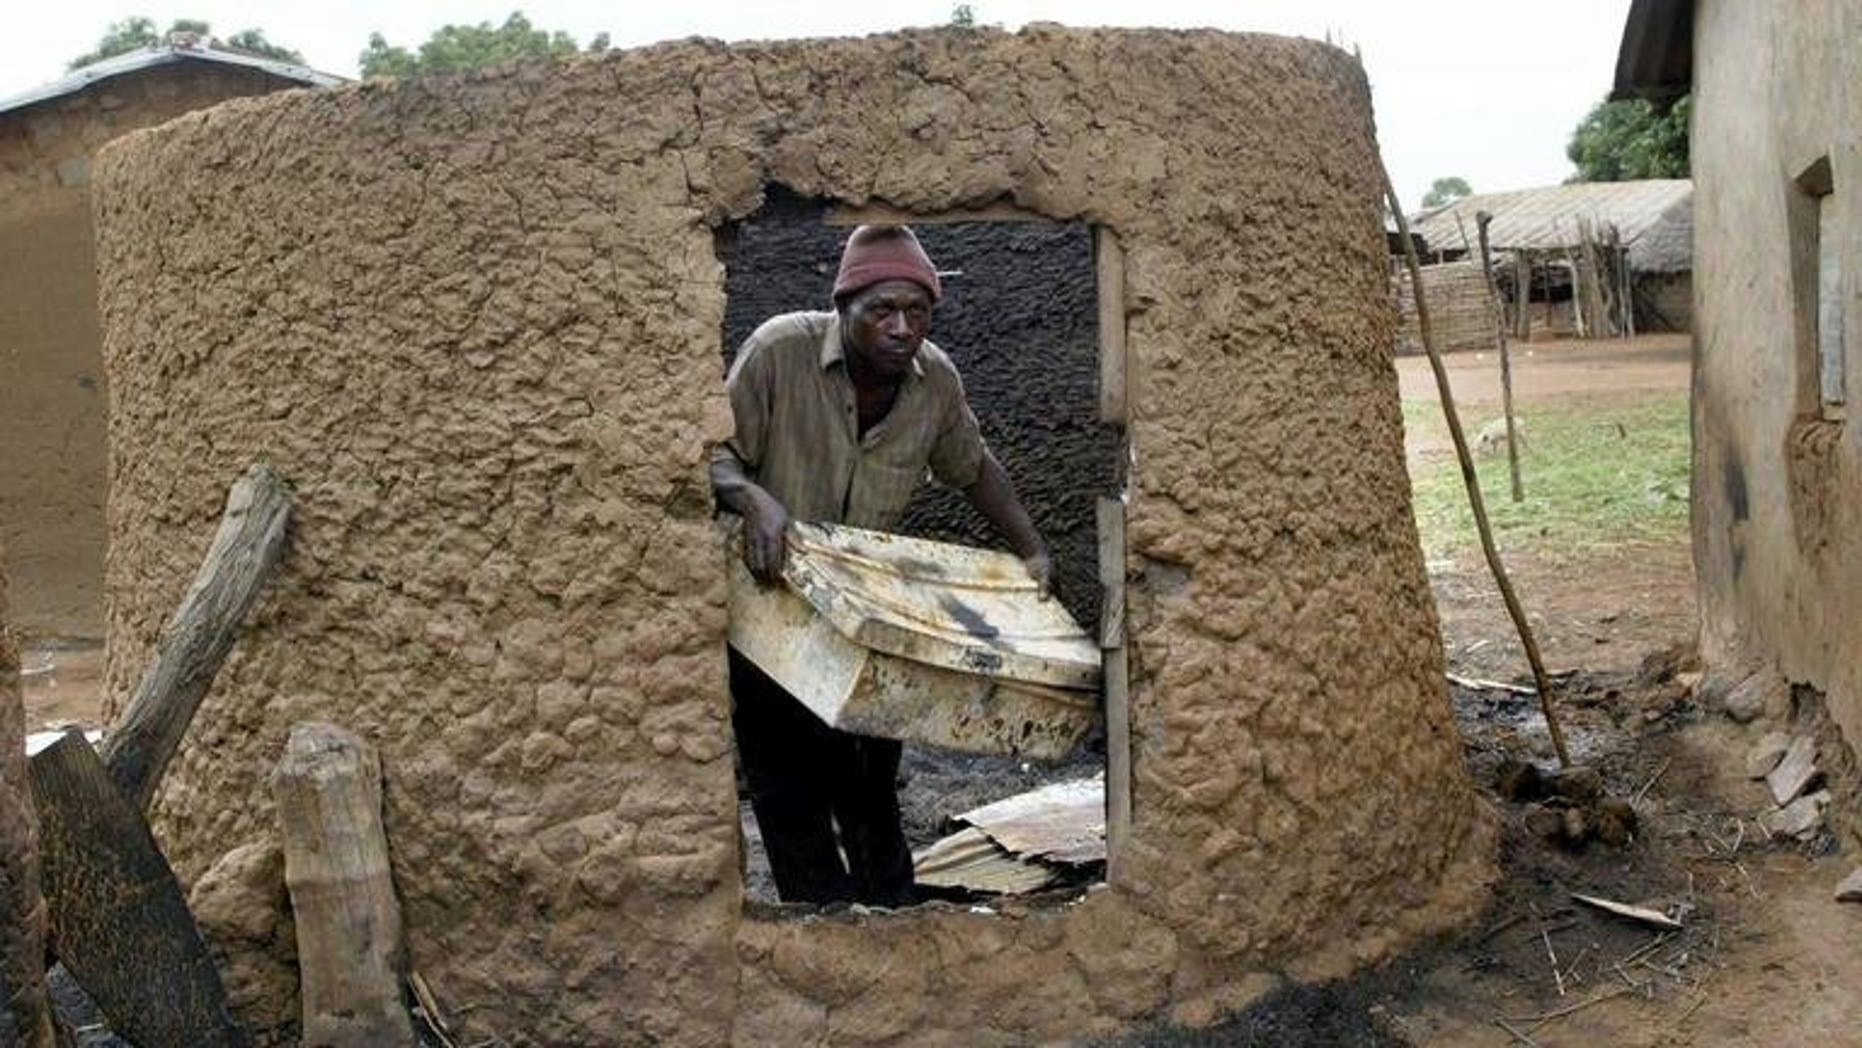 Monday Longshak in his burnt mud house at Sabon Gida in Quanpan district in May 2004 after a raid by Fulani herdsmen. Gunmen suspected to be ethnic Fulani herdsmen invaded a farming village in restive central Nigeria's Benue State, burning several houses, police said Saturday, amid reports that at least 20 people died in the violence.